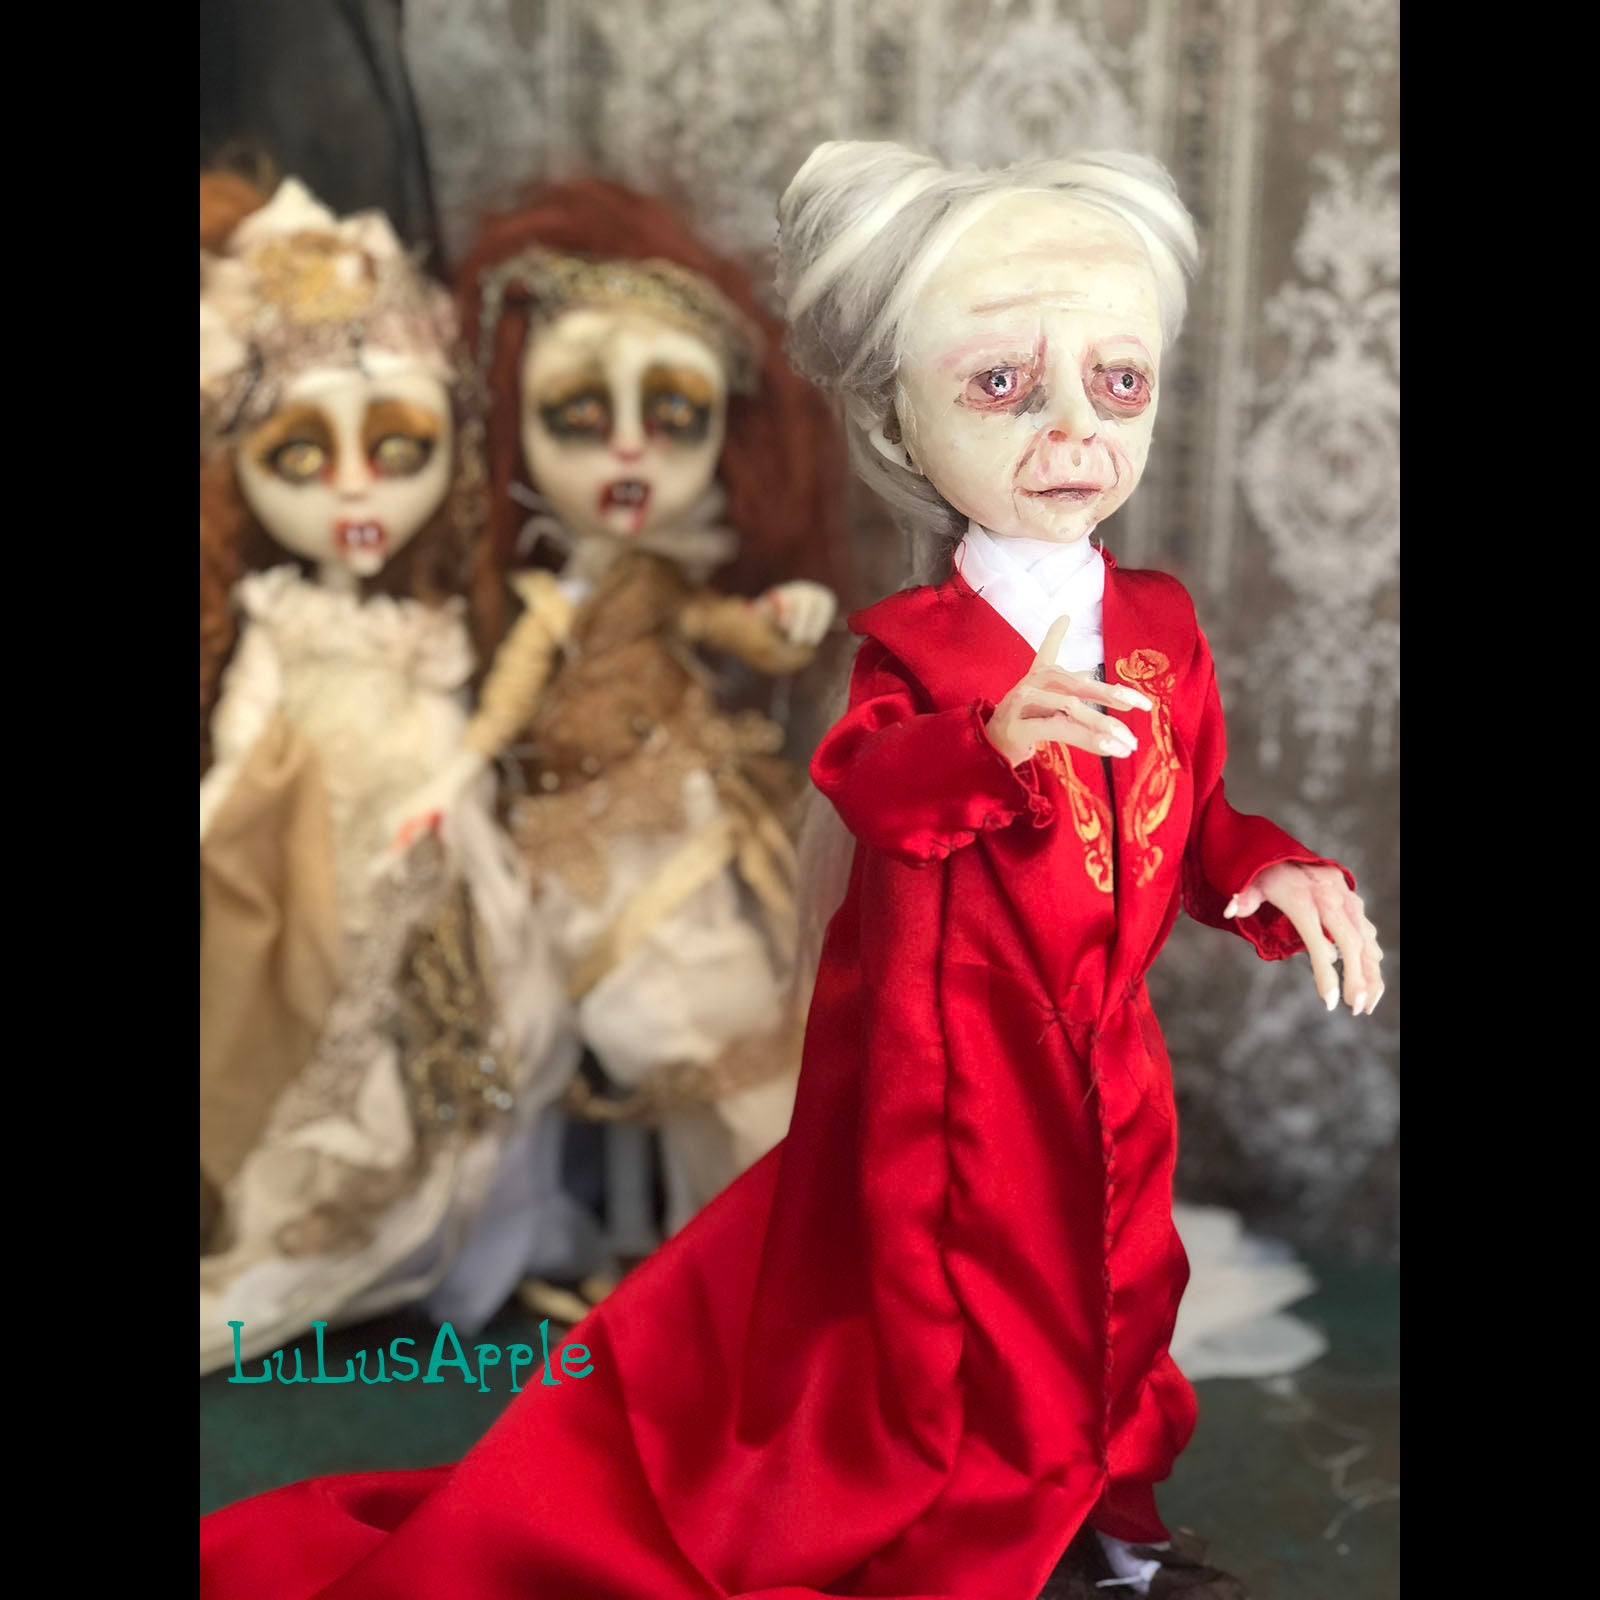 The Count Dracula Vampire Halloween Art Doll OOAK LuLusApple